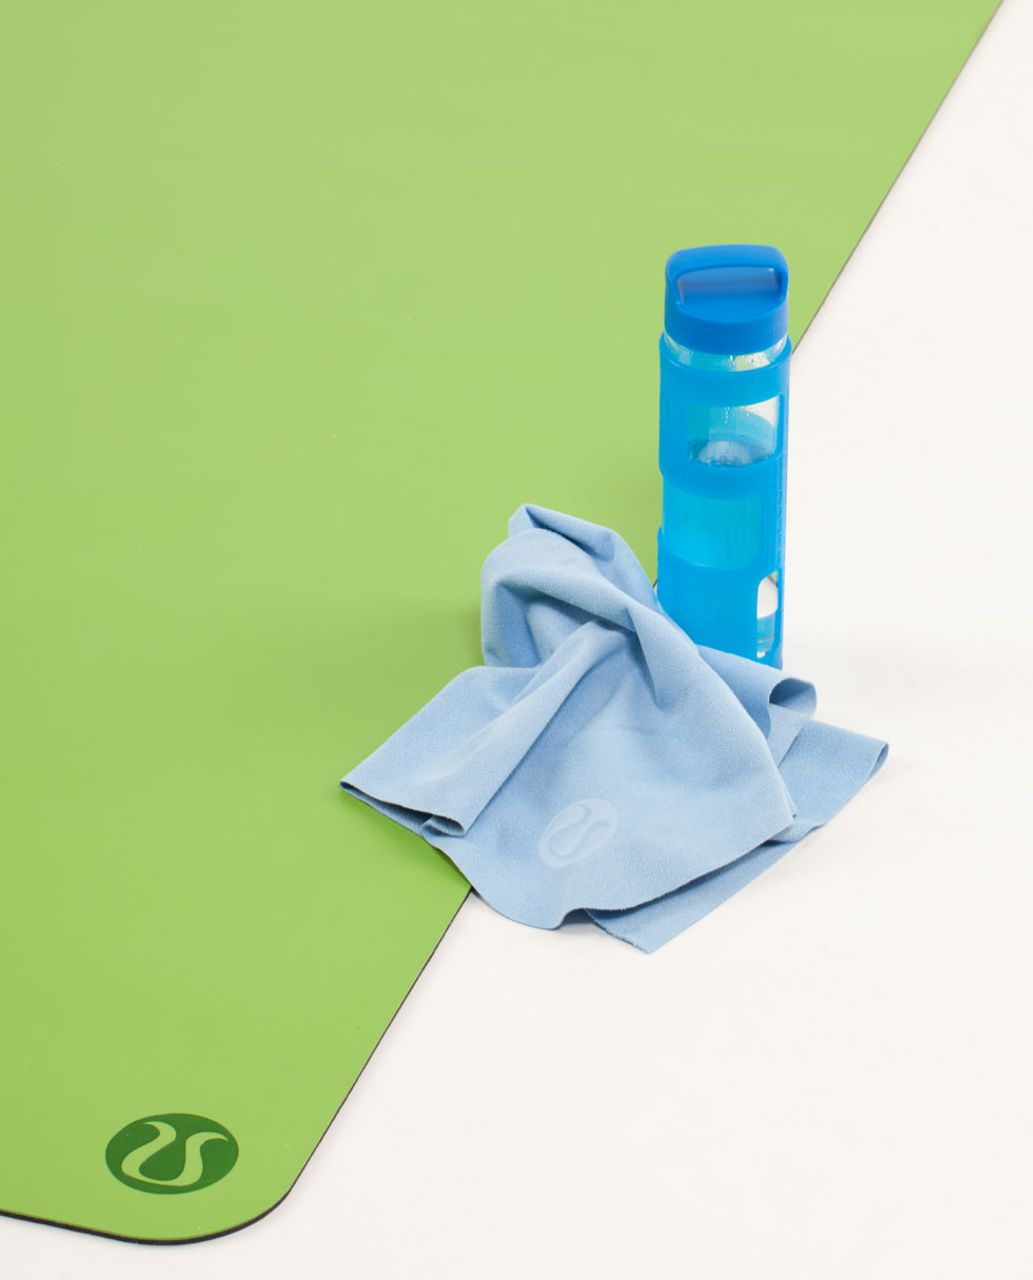 Lululemon The (Small) Towel - Moonglow